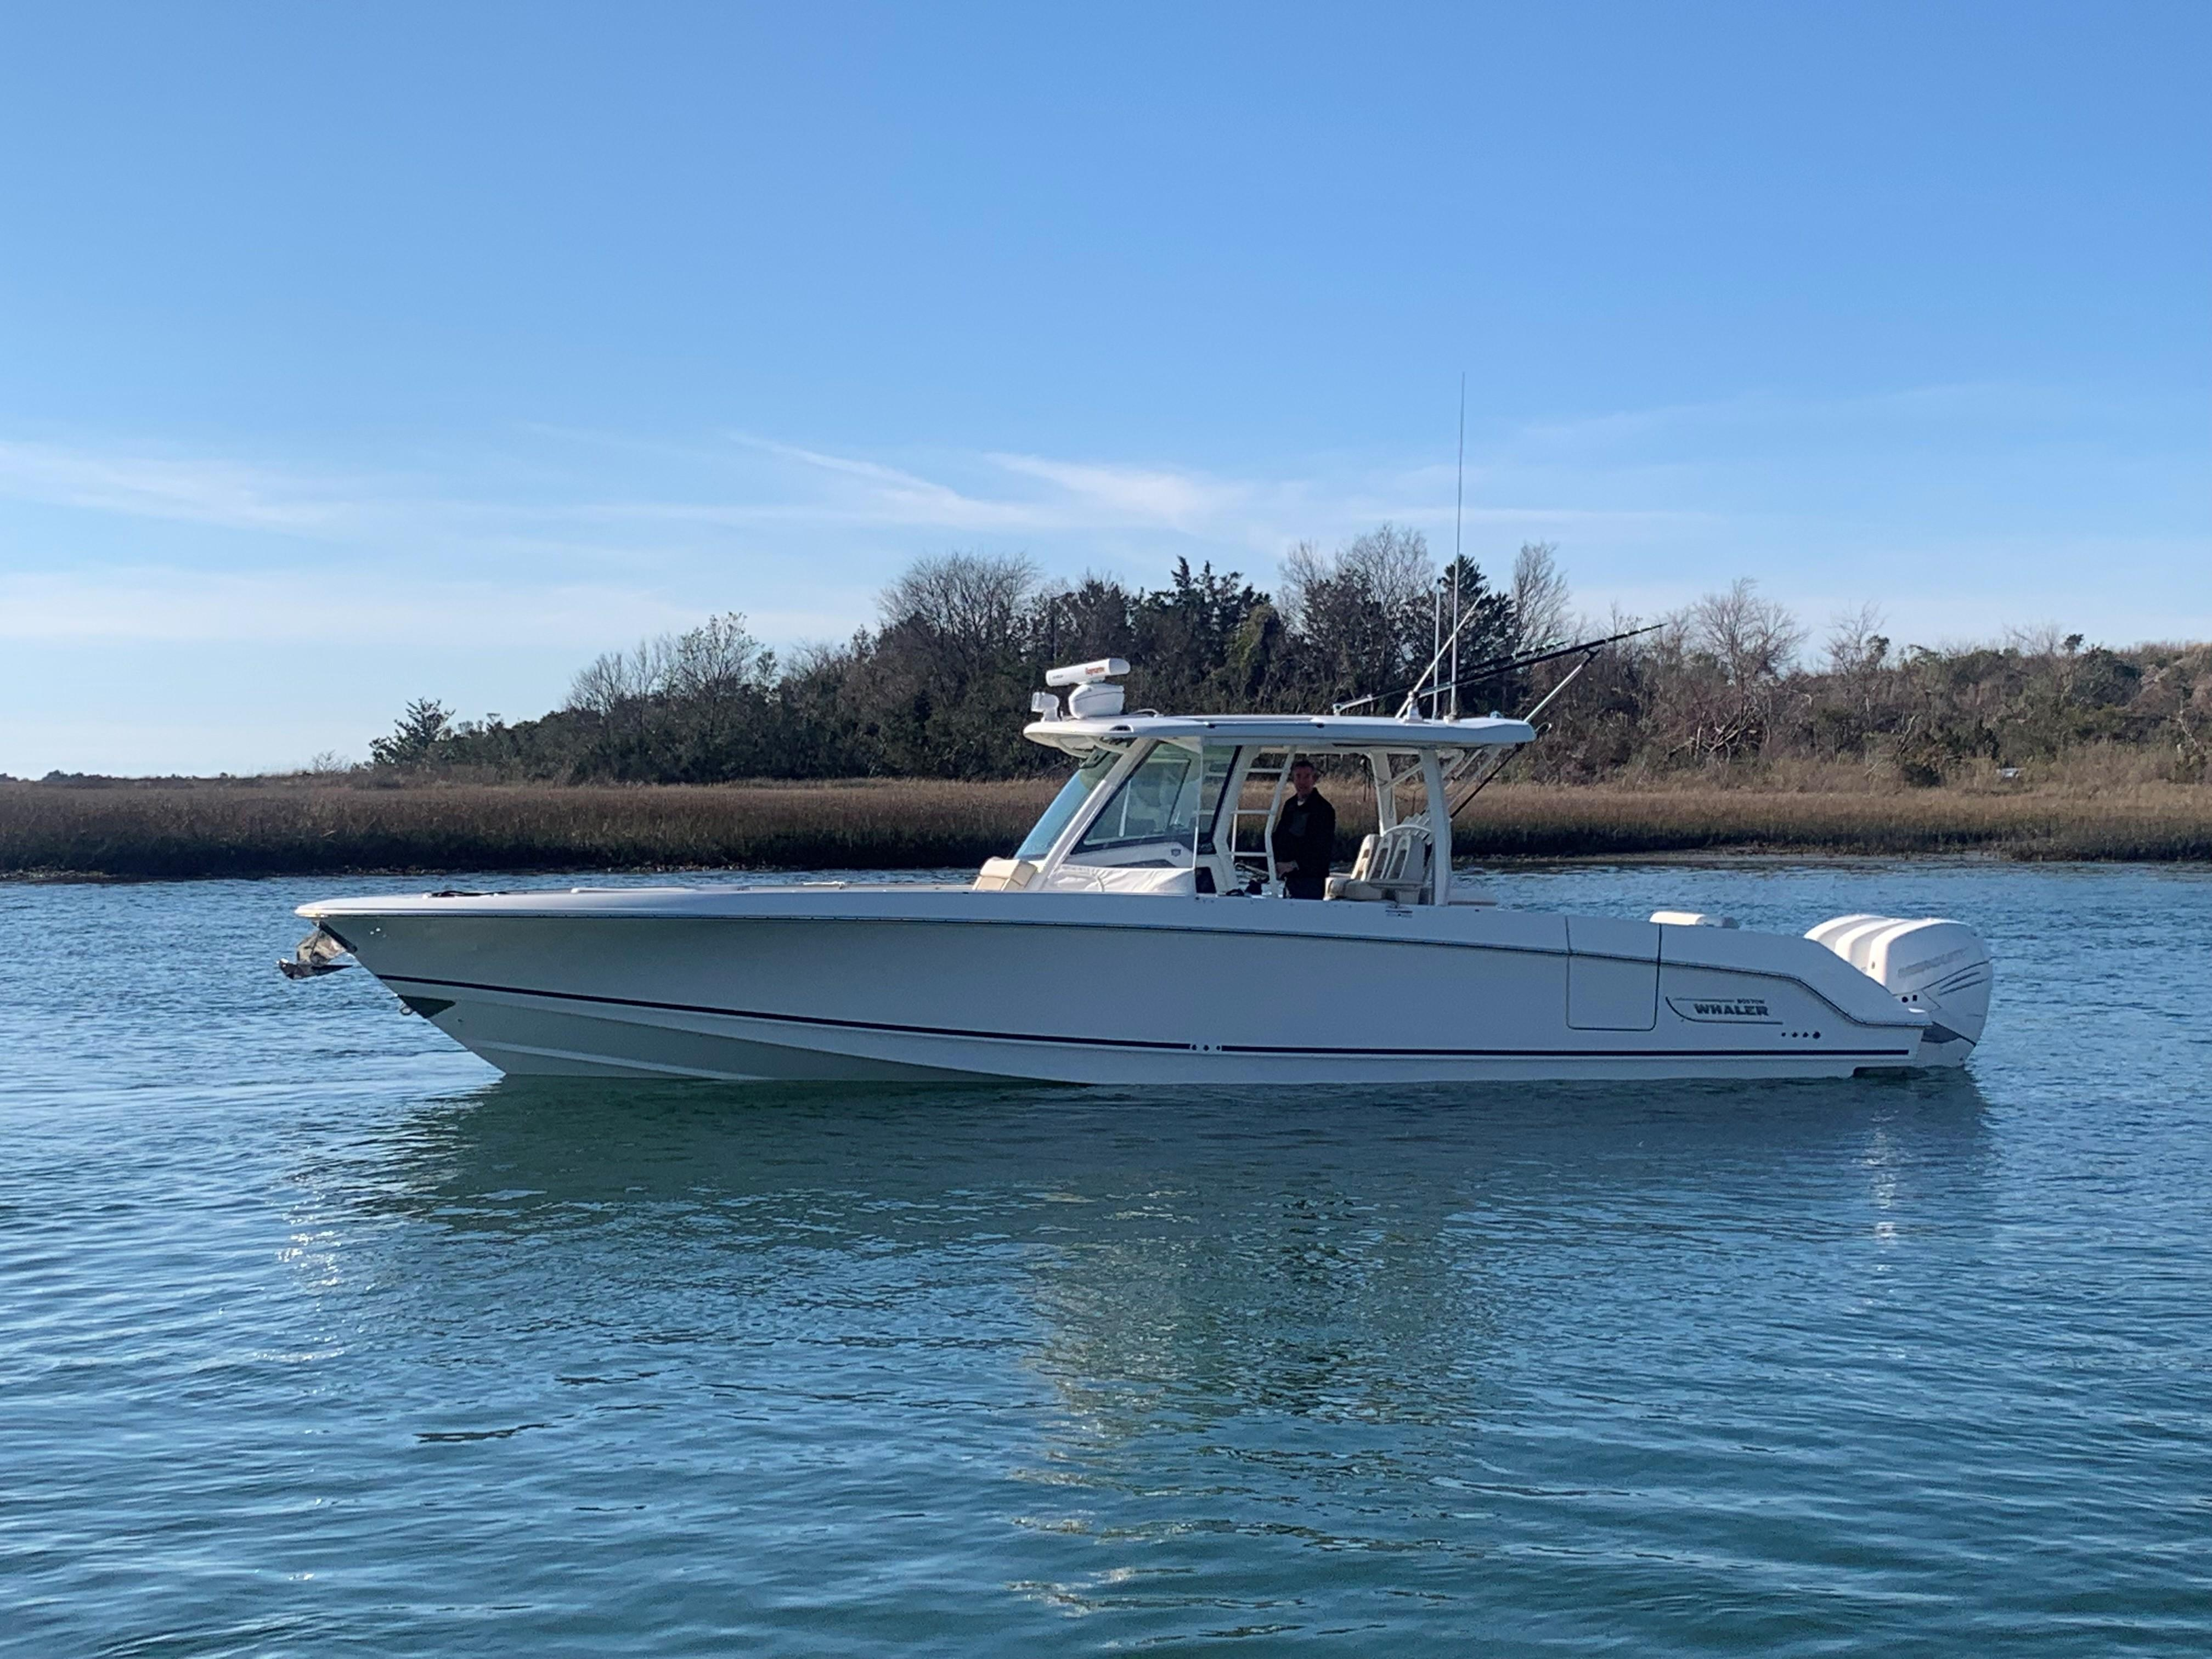 Boston Whaler Boats | The Original Unsinkable Legend for 60 Years